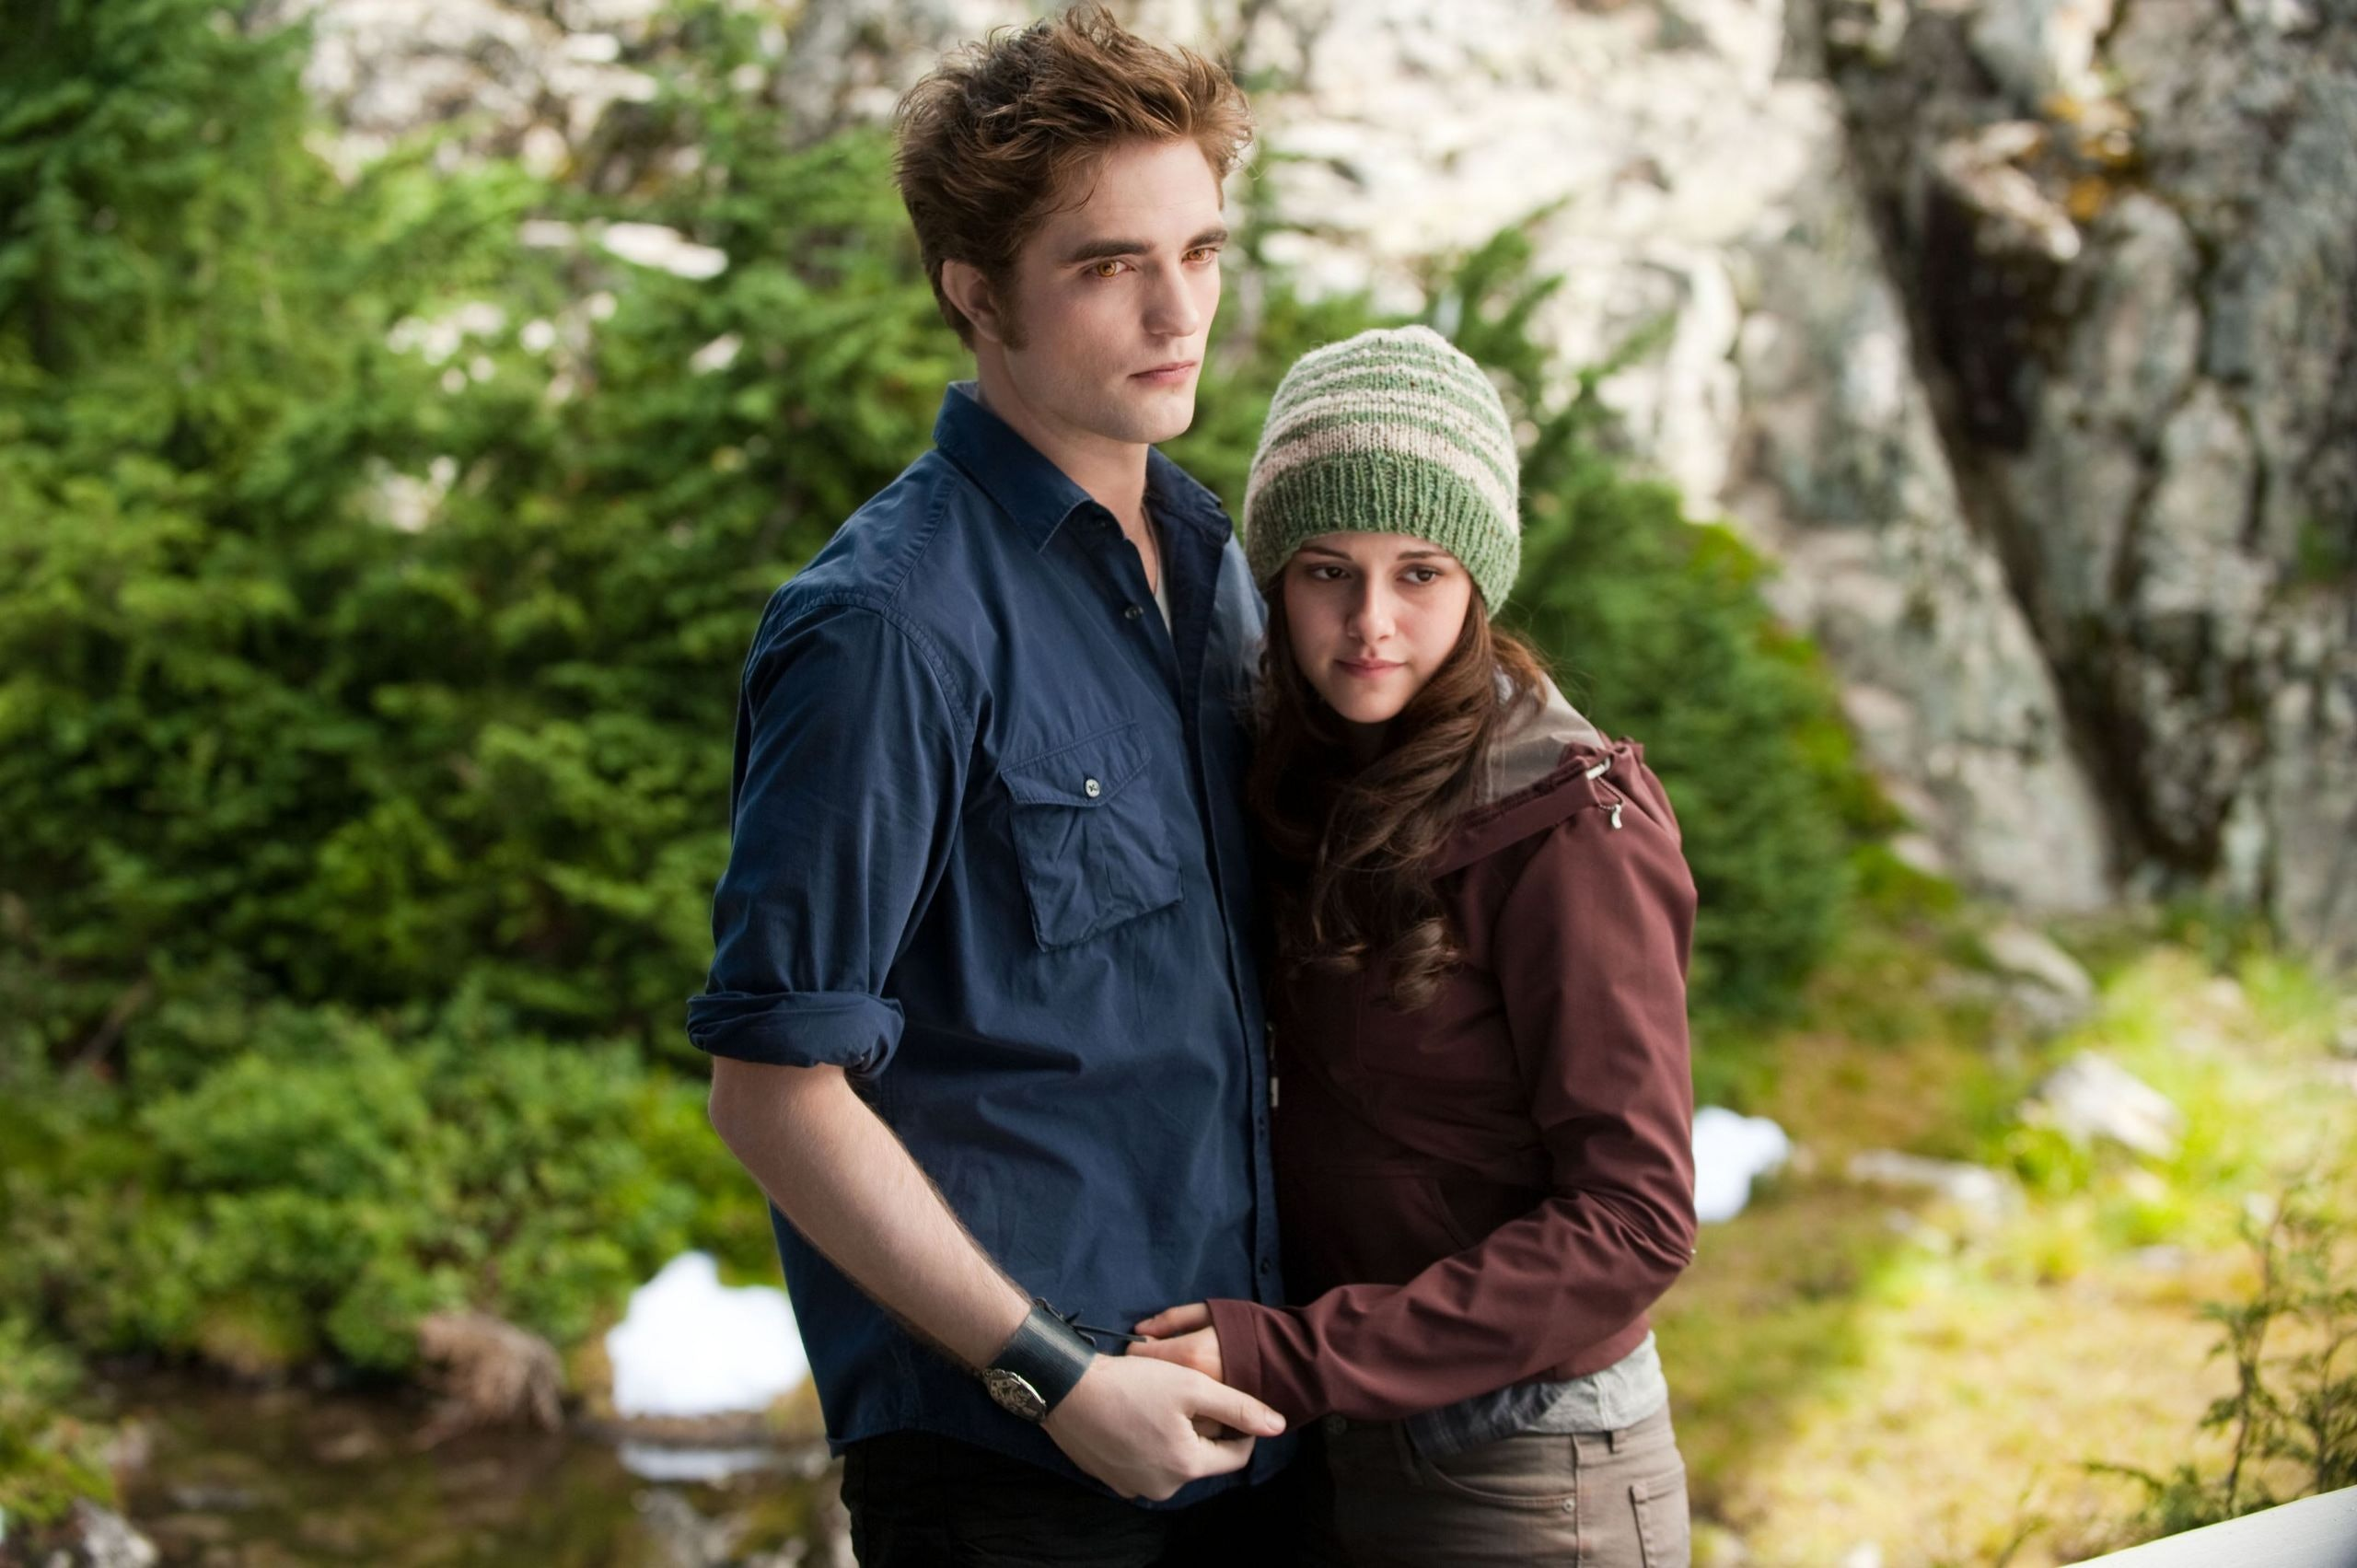 Twilight- bella and edward dating in real life